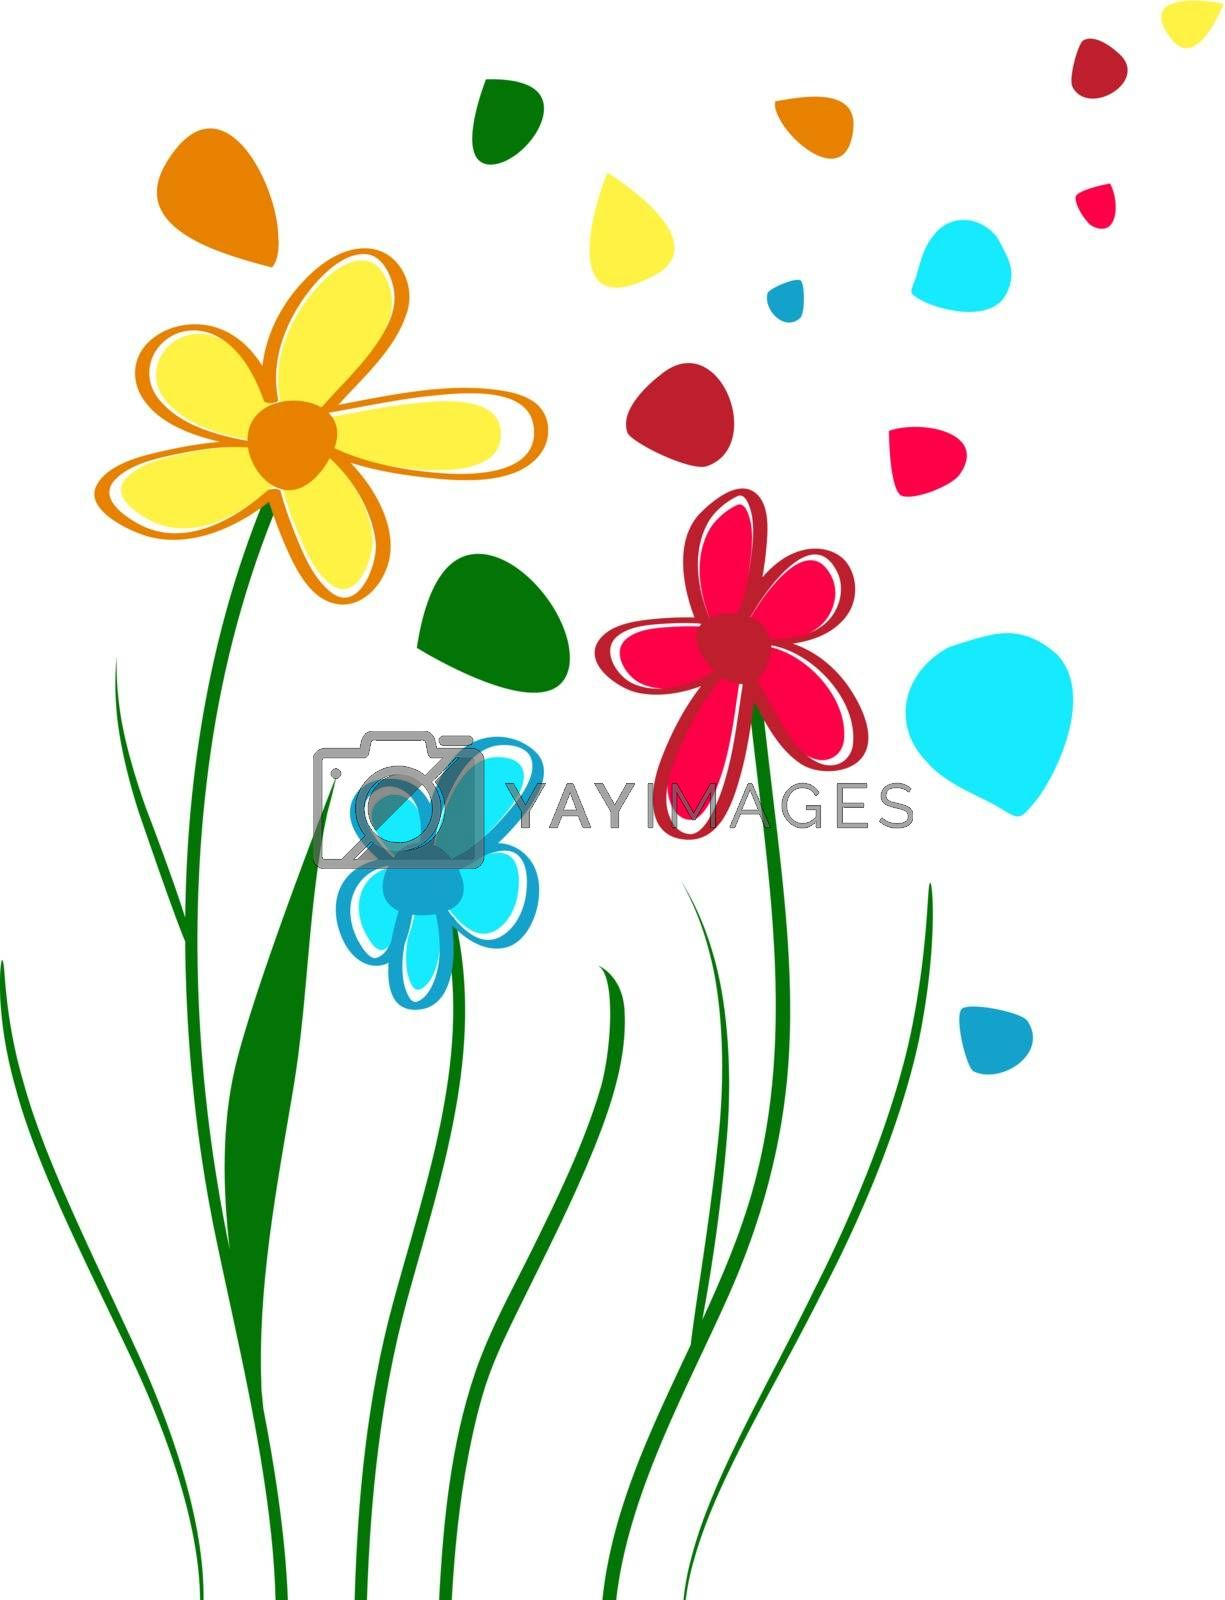 Abstract Children Draw Bright Flowers, Copyspace